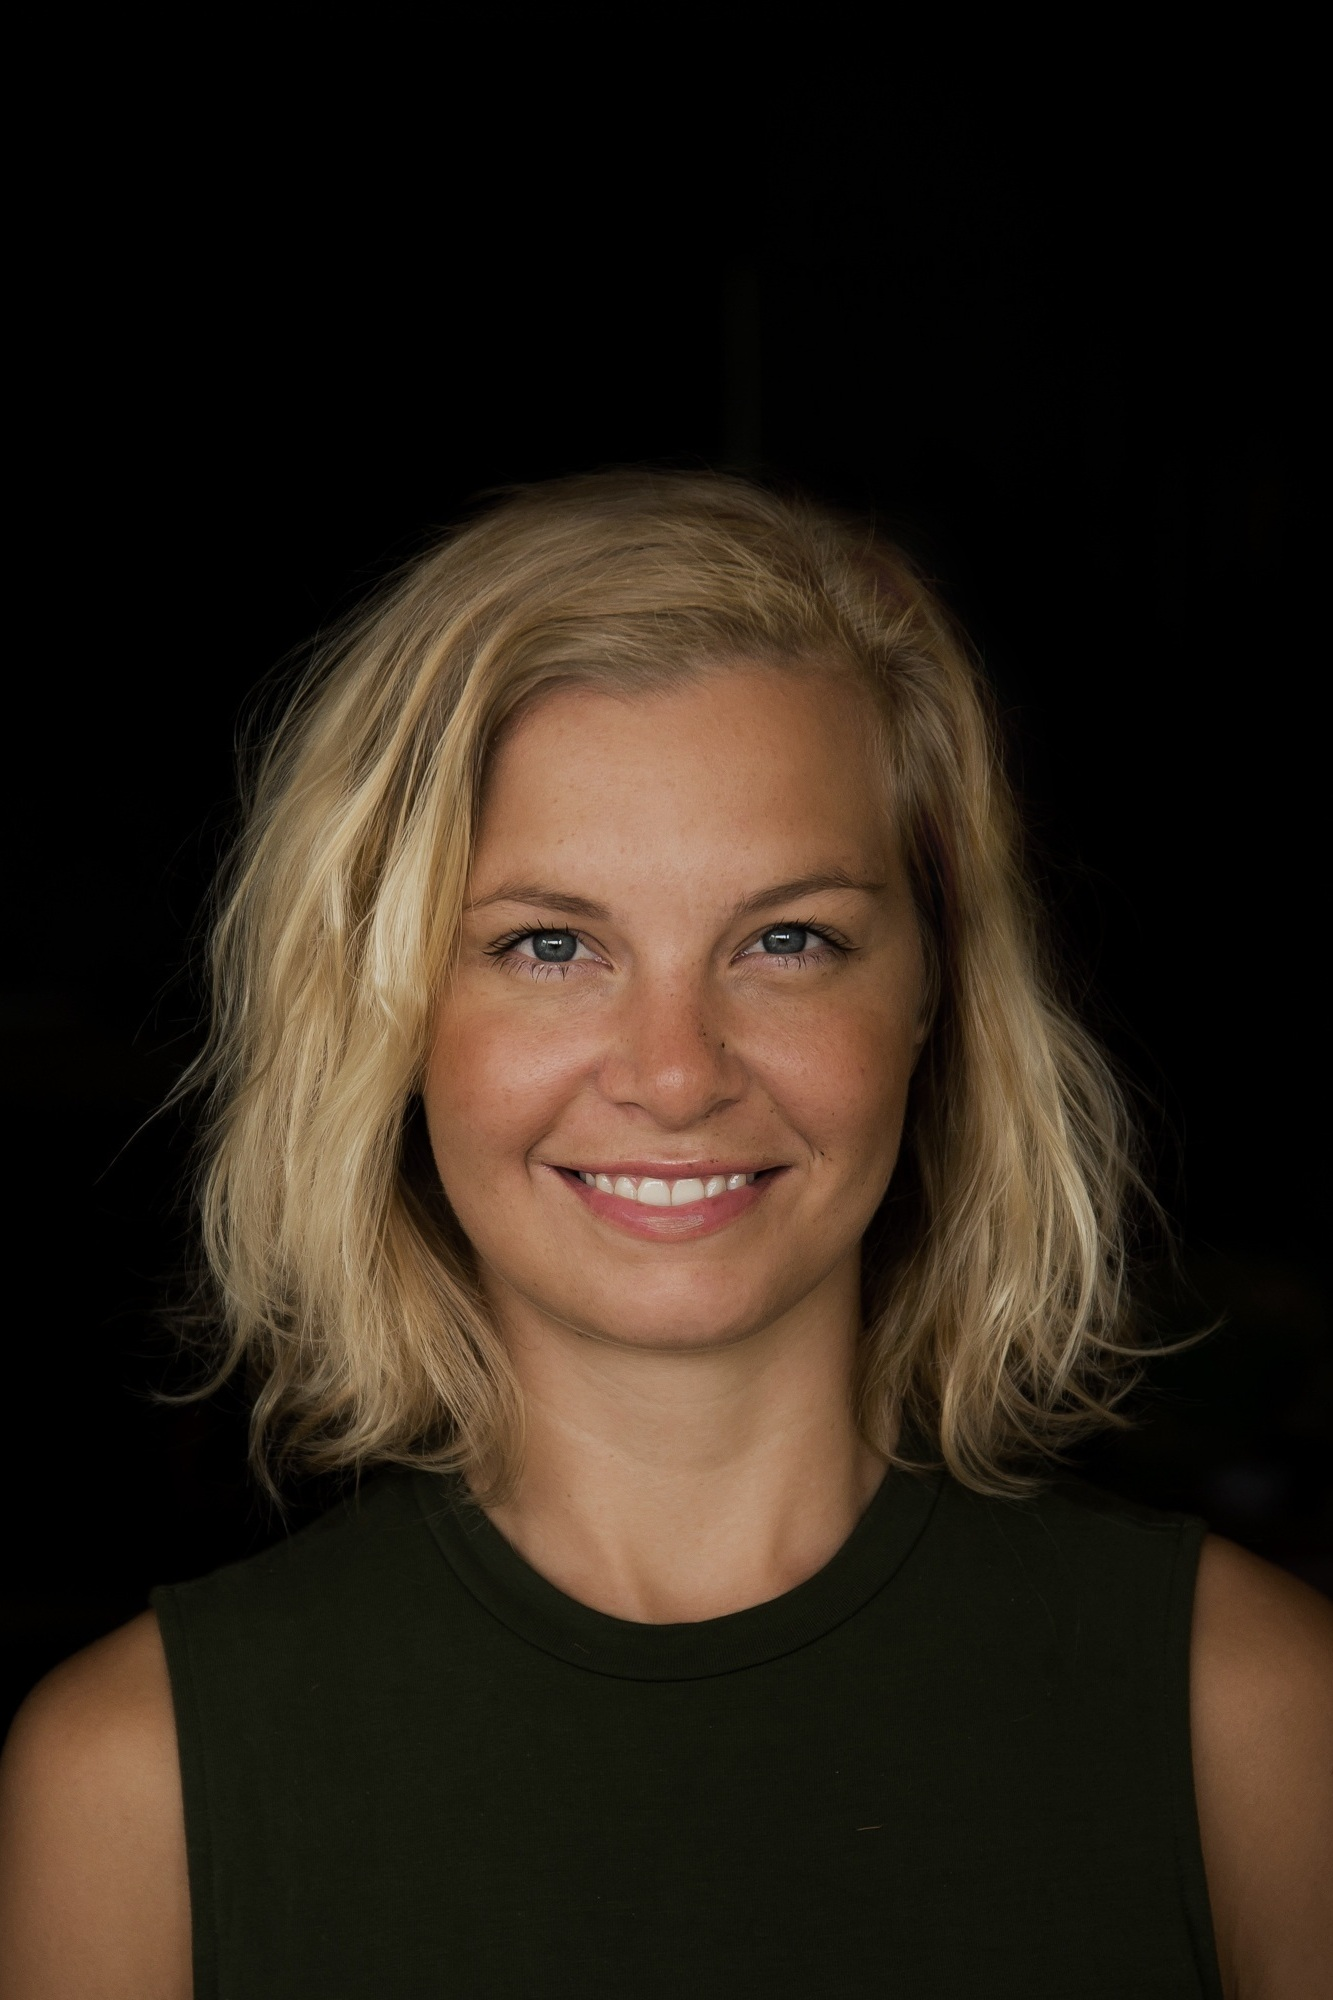 Cecilie Wang -Project Lead & Business Developer - As a founding partner Cecilie is responsible for project mangement, business growth and communication with clients, suppliers and collaboration partners.